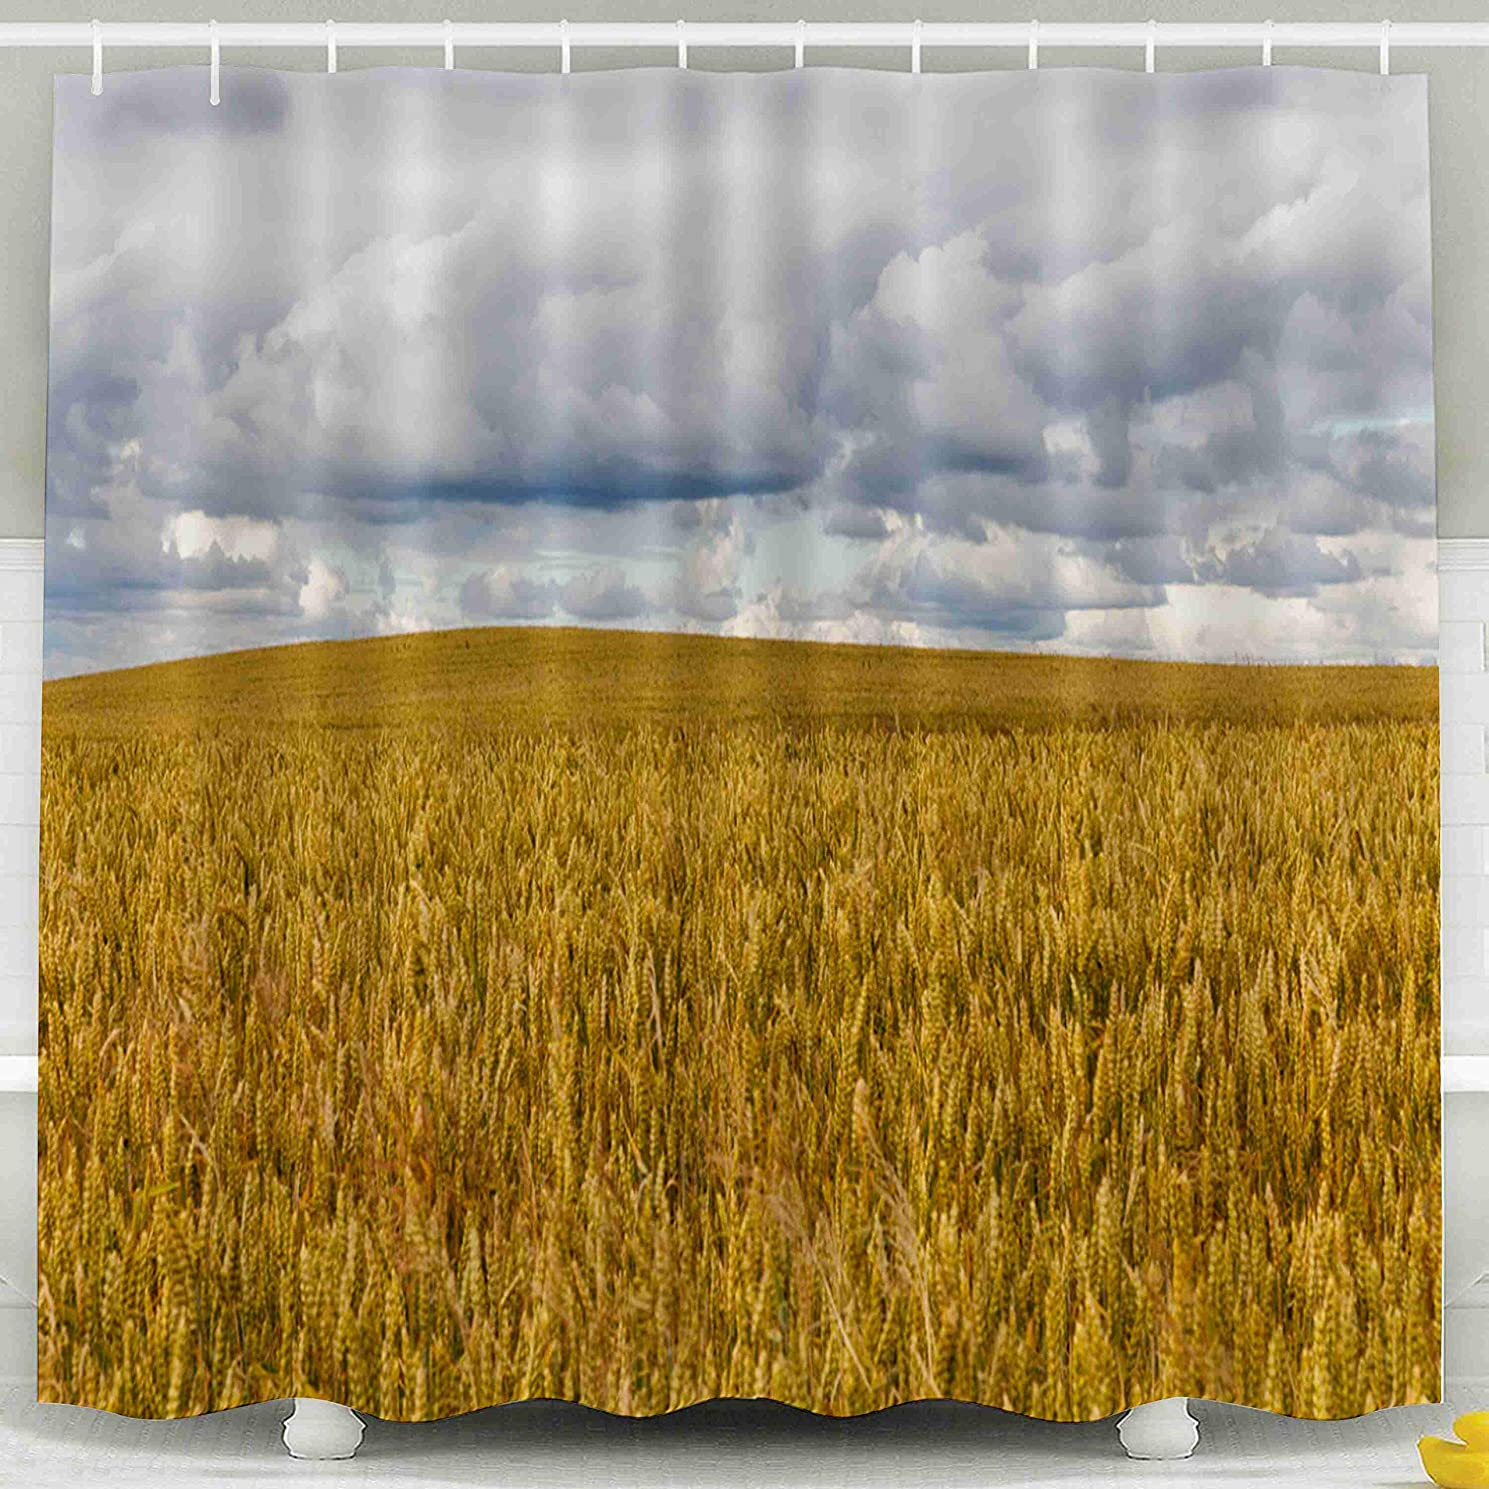 Shorping 78x72 Shower Curtain,Kids Shower Curtain, Agricultural Field Orange Yellow Wheat in The Summer Landscape Waterproof Decor Bathroom Set with Hooks